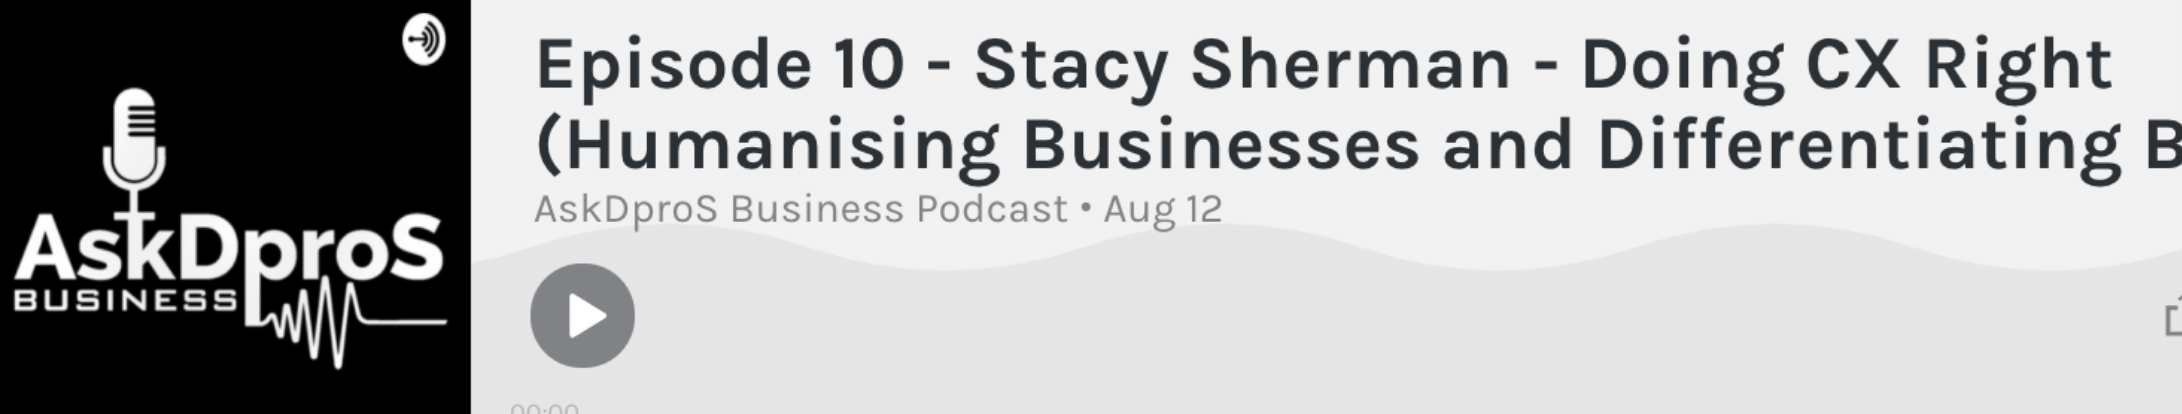 Listen to Stacy Sherman Speak on AskDPros about Doing CX Right